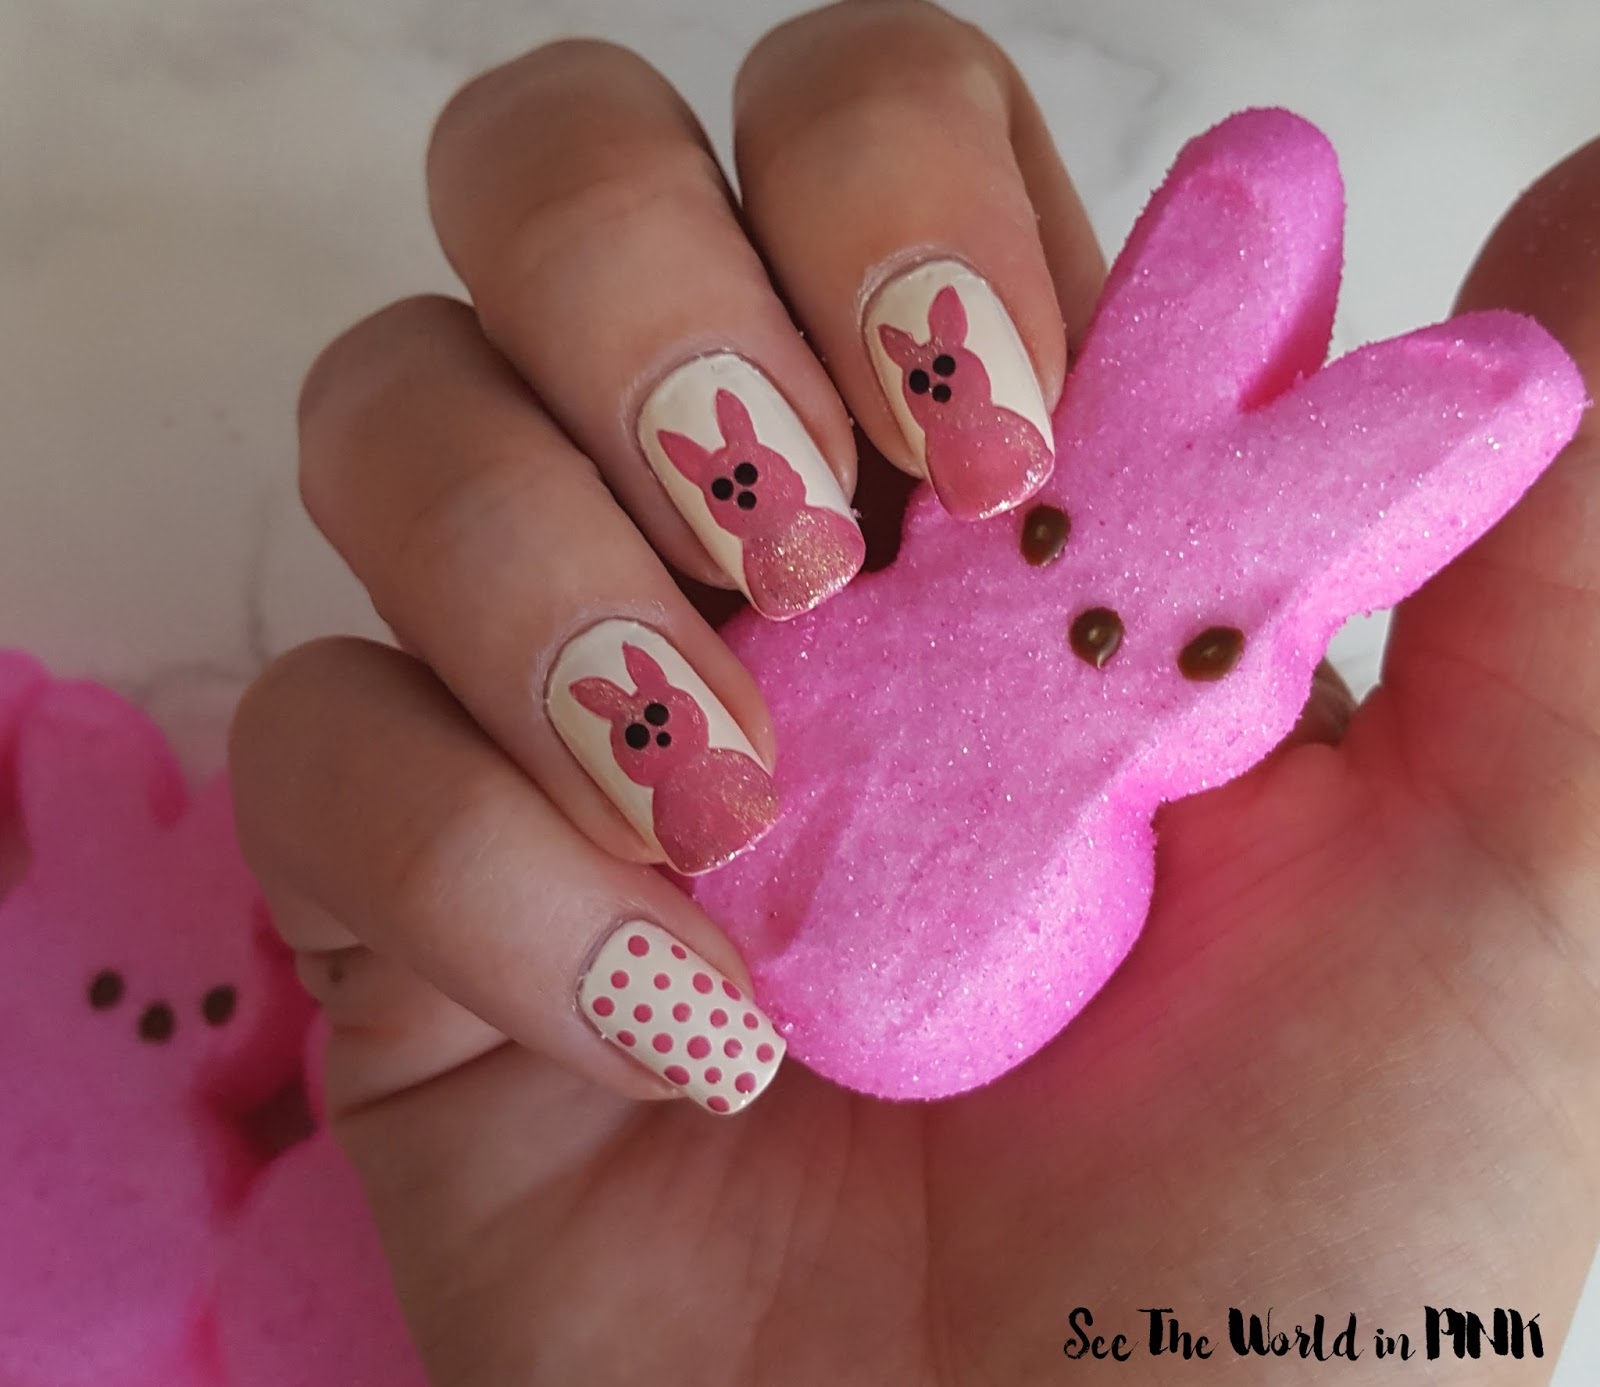 Easter Manicure Monday - Peeps Spring Pink Bunny Nail Art